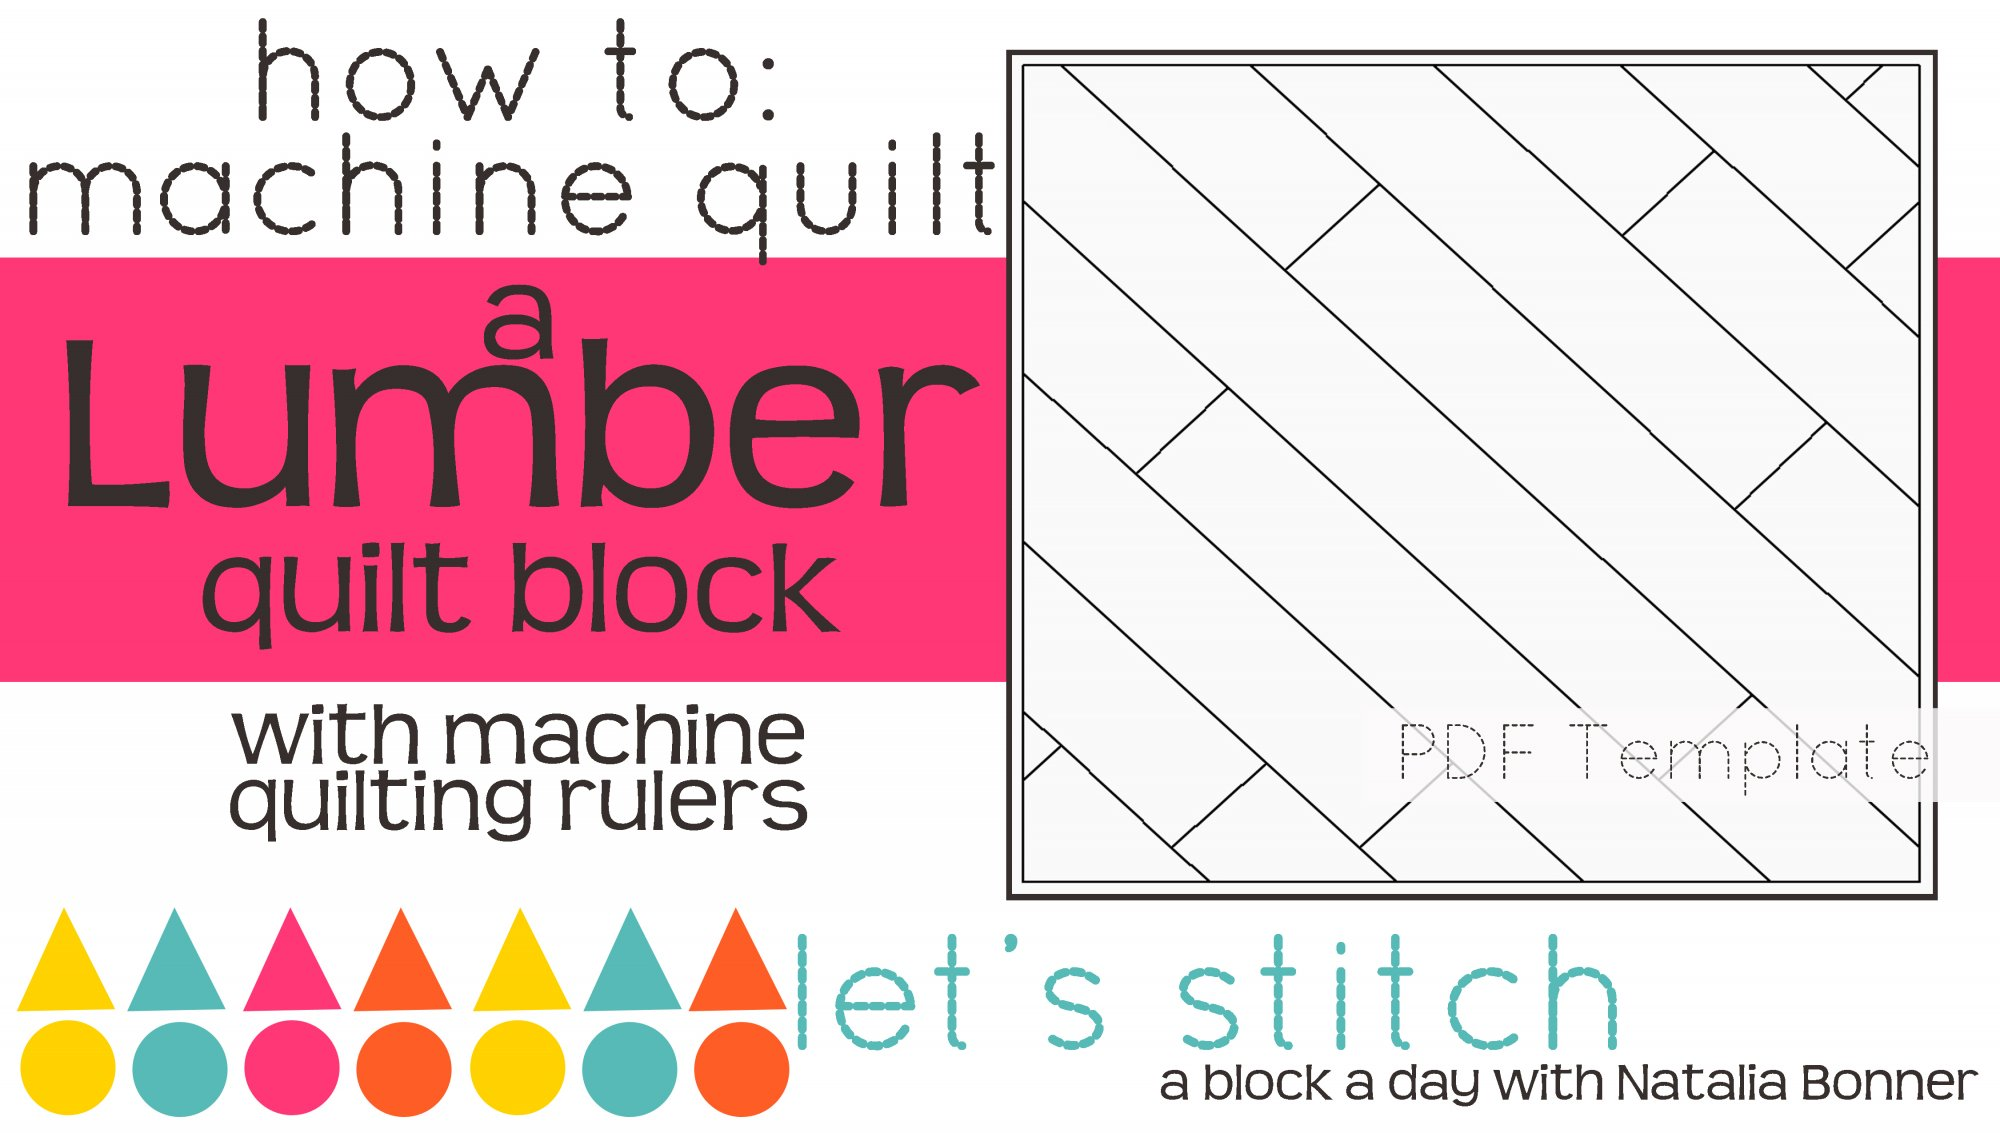 Let's Stitch - A Block a Day With Natalia Bonner - PDF - Lumber